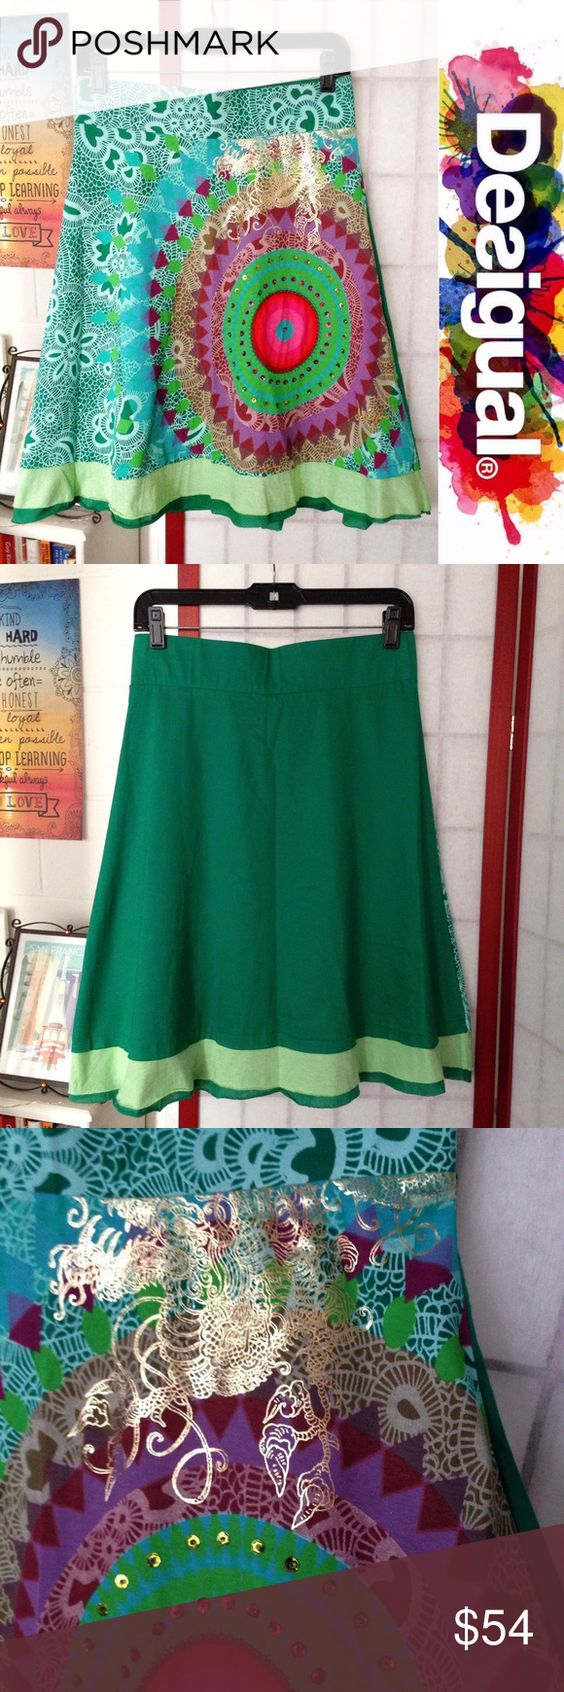 """Desigual (NWOT) Gardner knee skirt ✨statement✨ Size S (hip is elastic & aprox 14 3/4"""" flat across) • 100% cotton • NO FLAWS & NEVER WORN! • Length of skirt is aprox 23.5"""" • Lots of sequined embellishments & gold foil dragon-like pattern • Orginally purchased at Desigual's Ala Moana store in Honolulu, HI • Any questions, ask away! 👍🏻 Desigual Skirts A-Line or Full"""